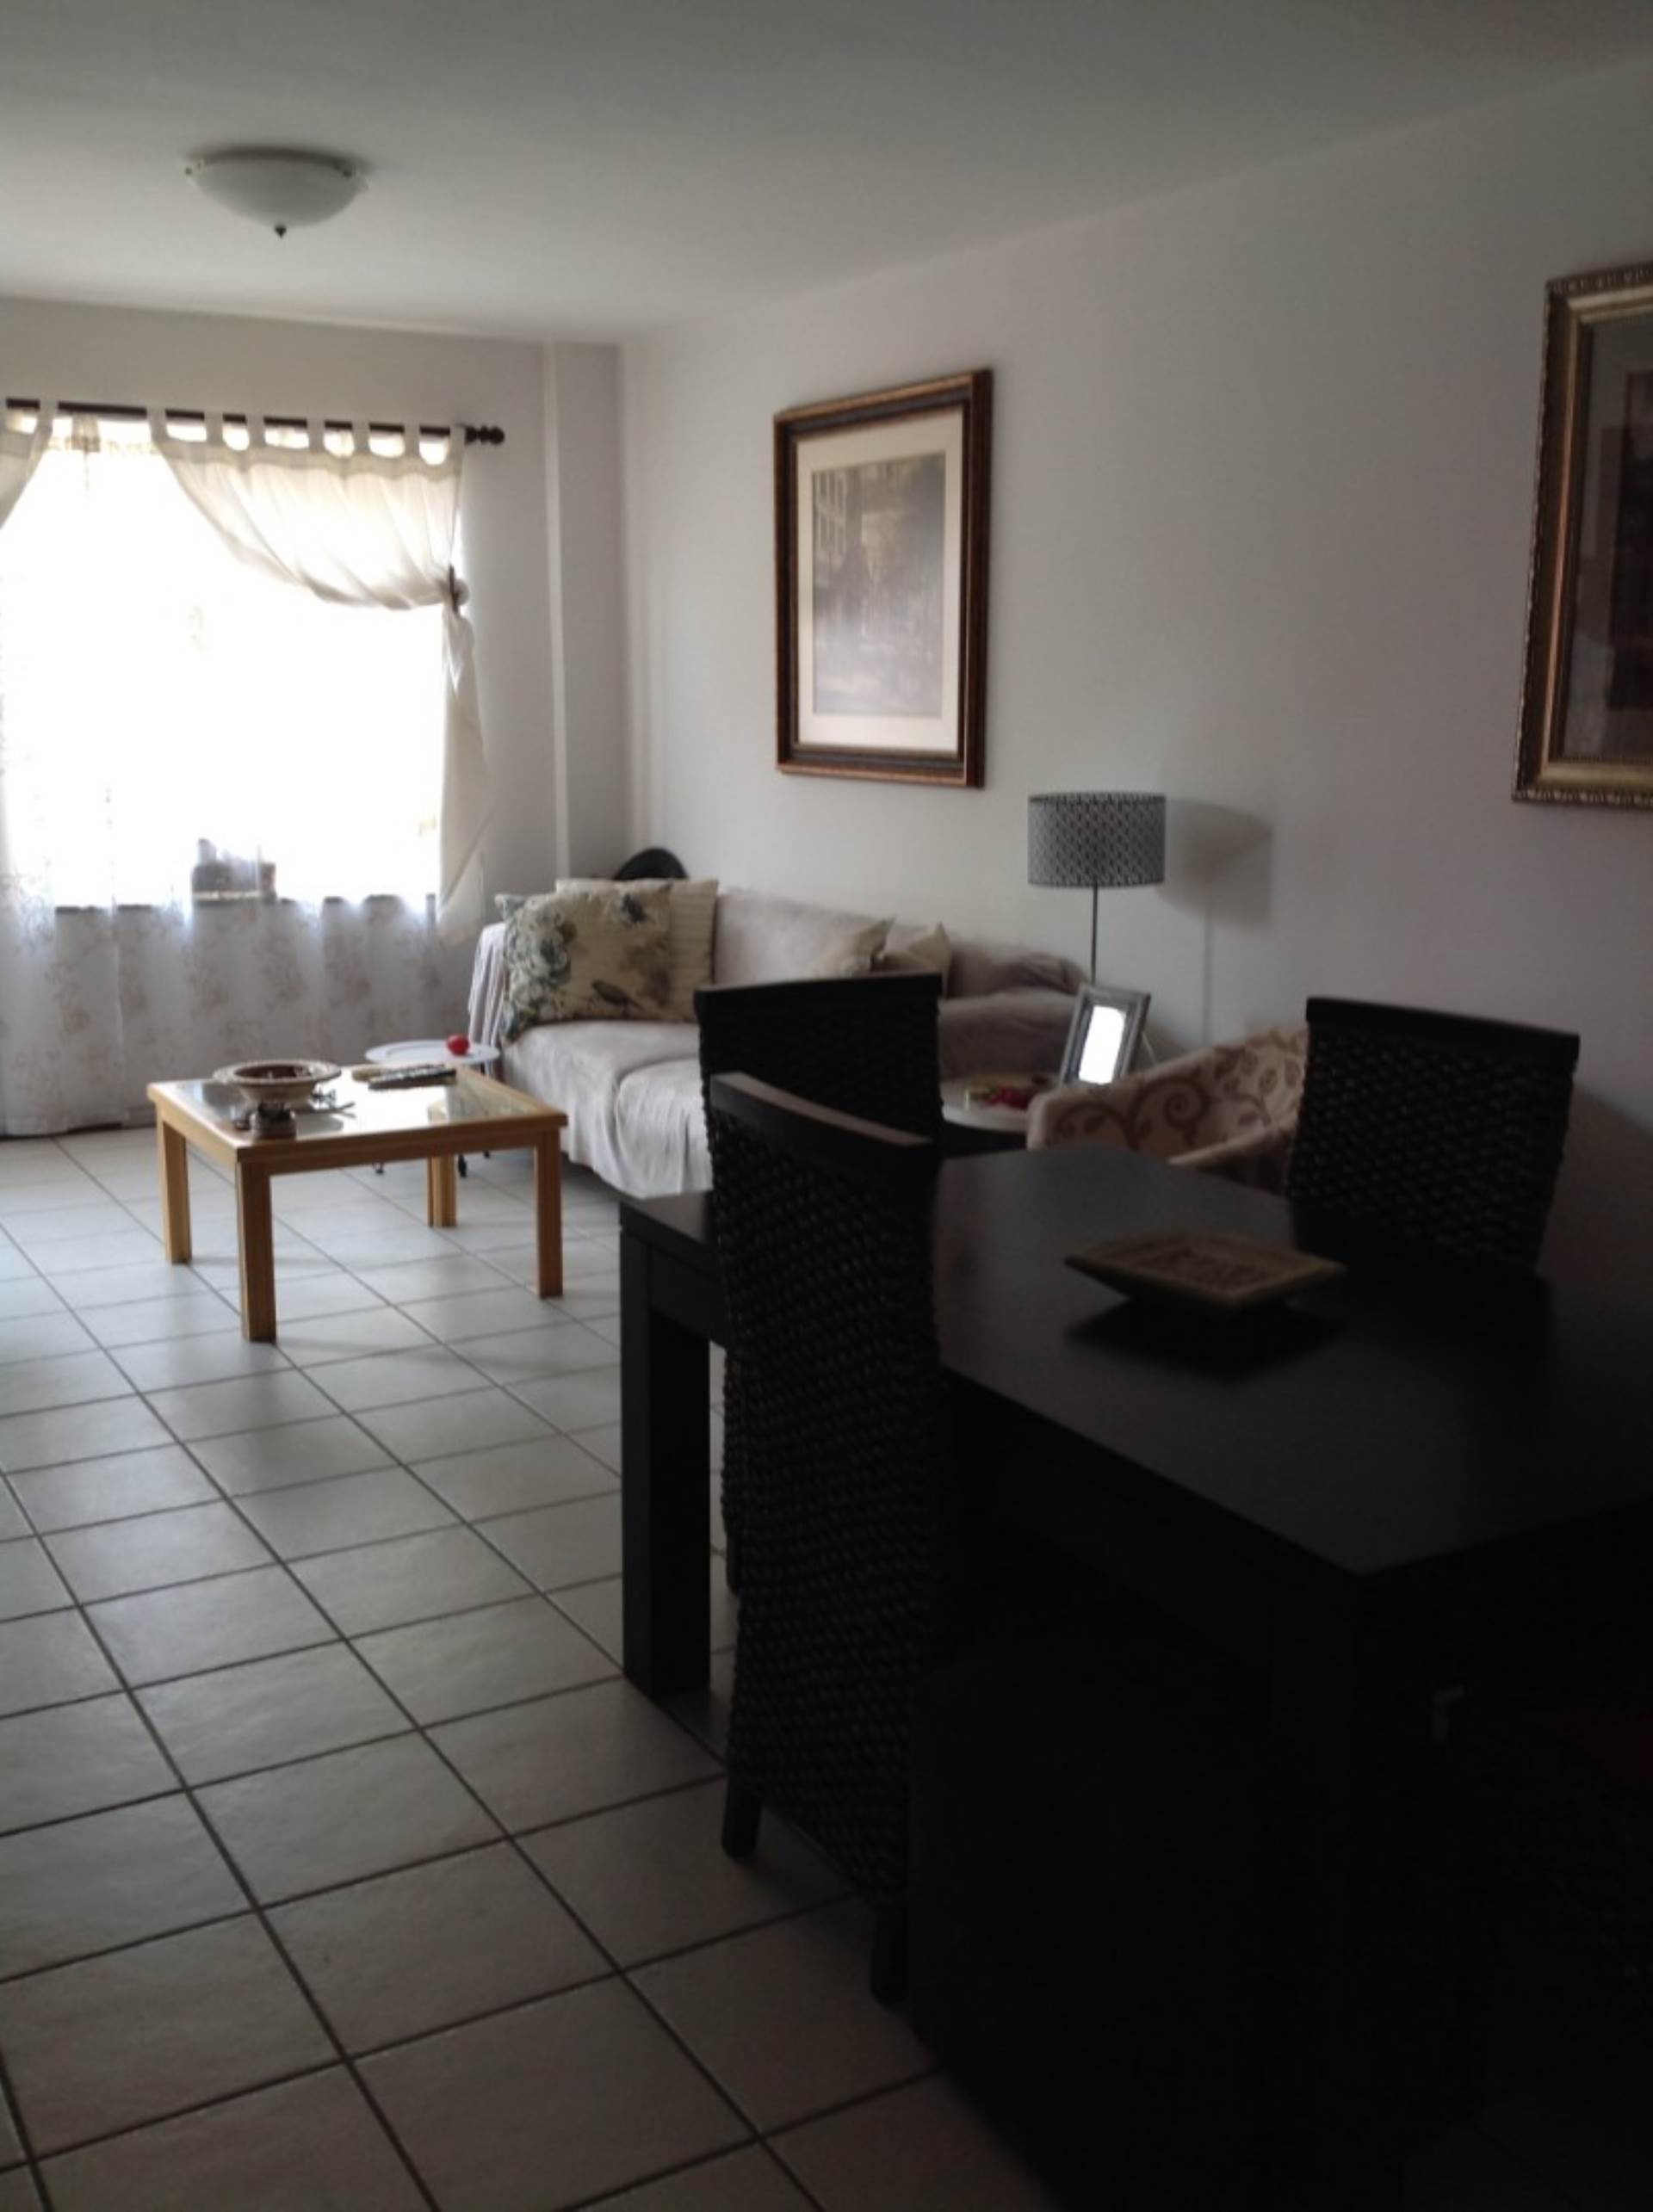 1 BedroomTownhouse For Sale In Malvern